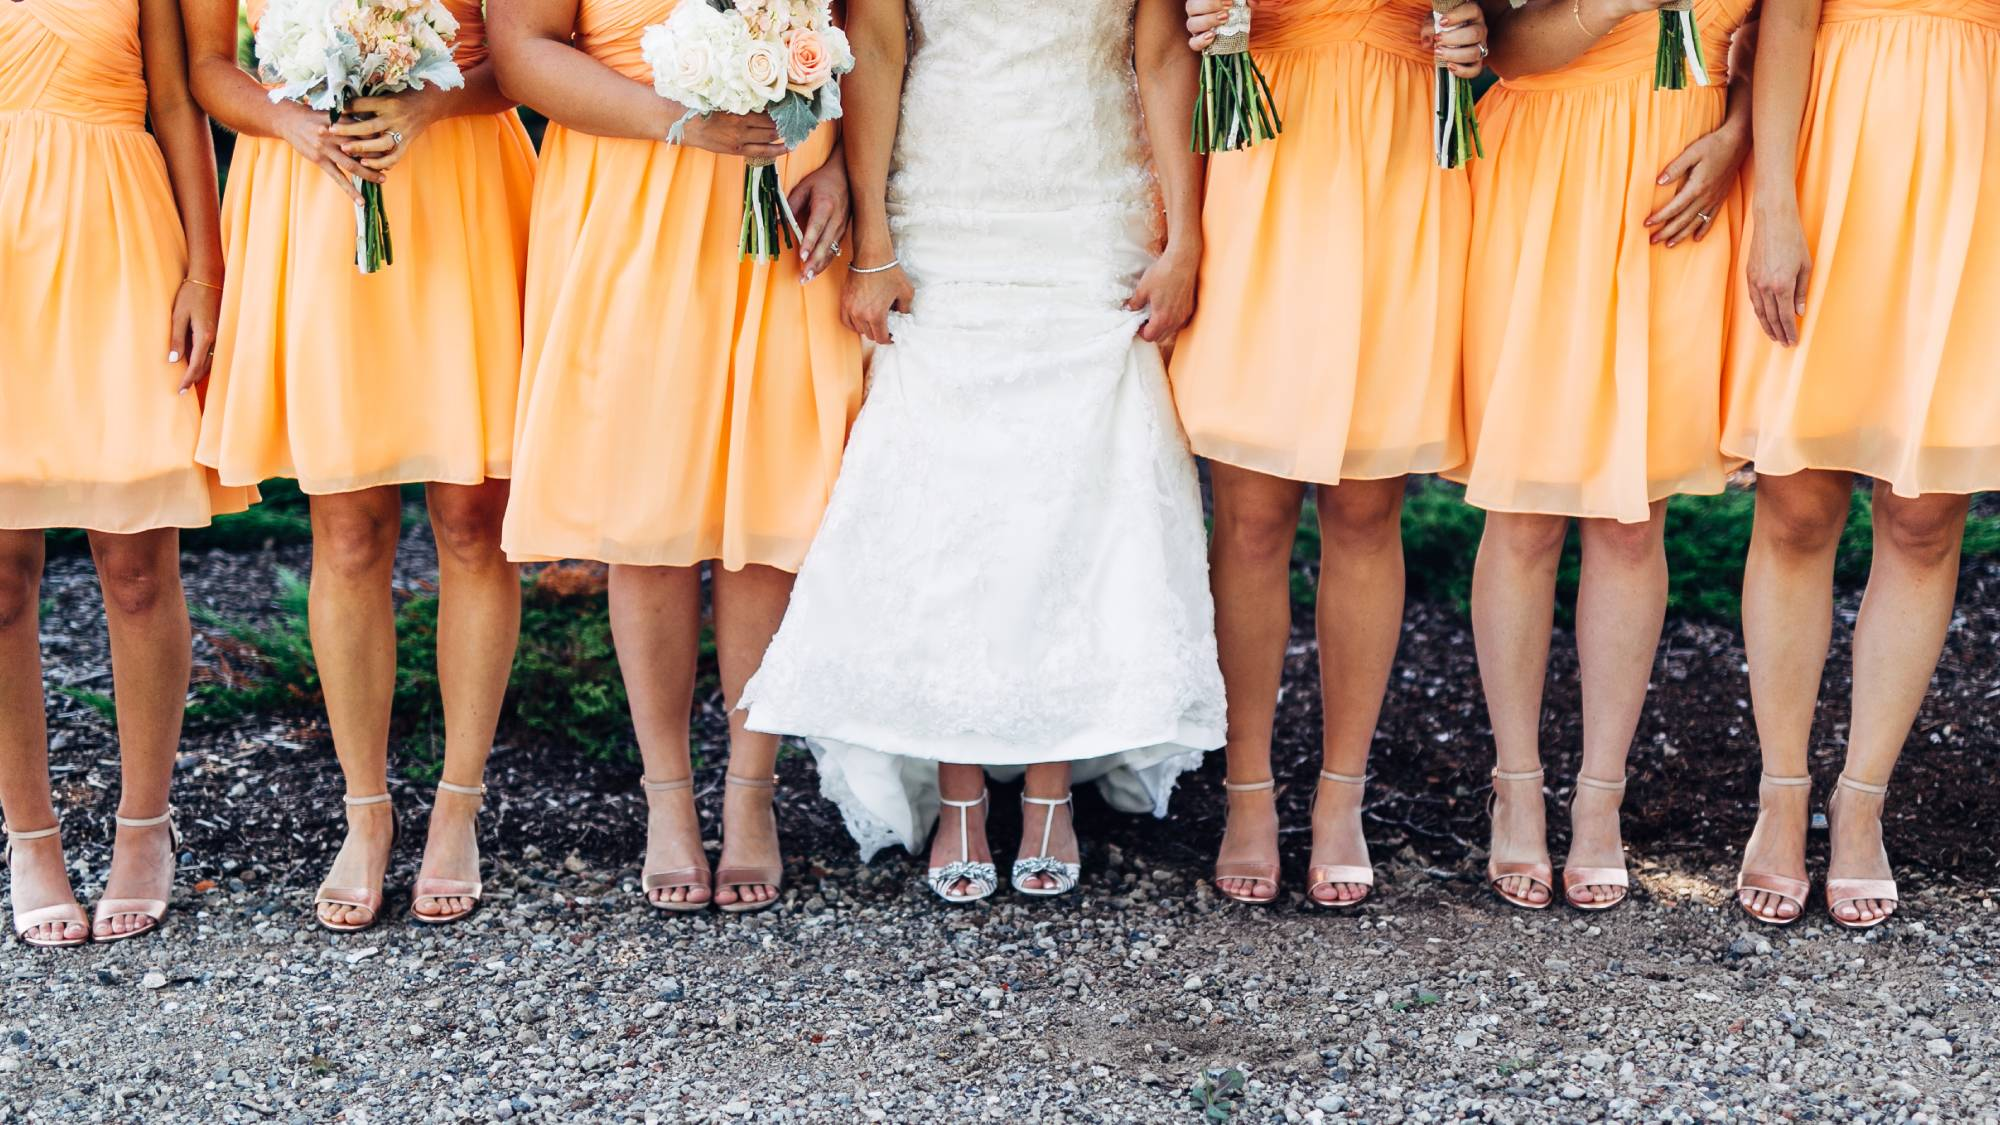 Bridesmaid dresses are likely to follow this colour trend in 2020